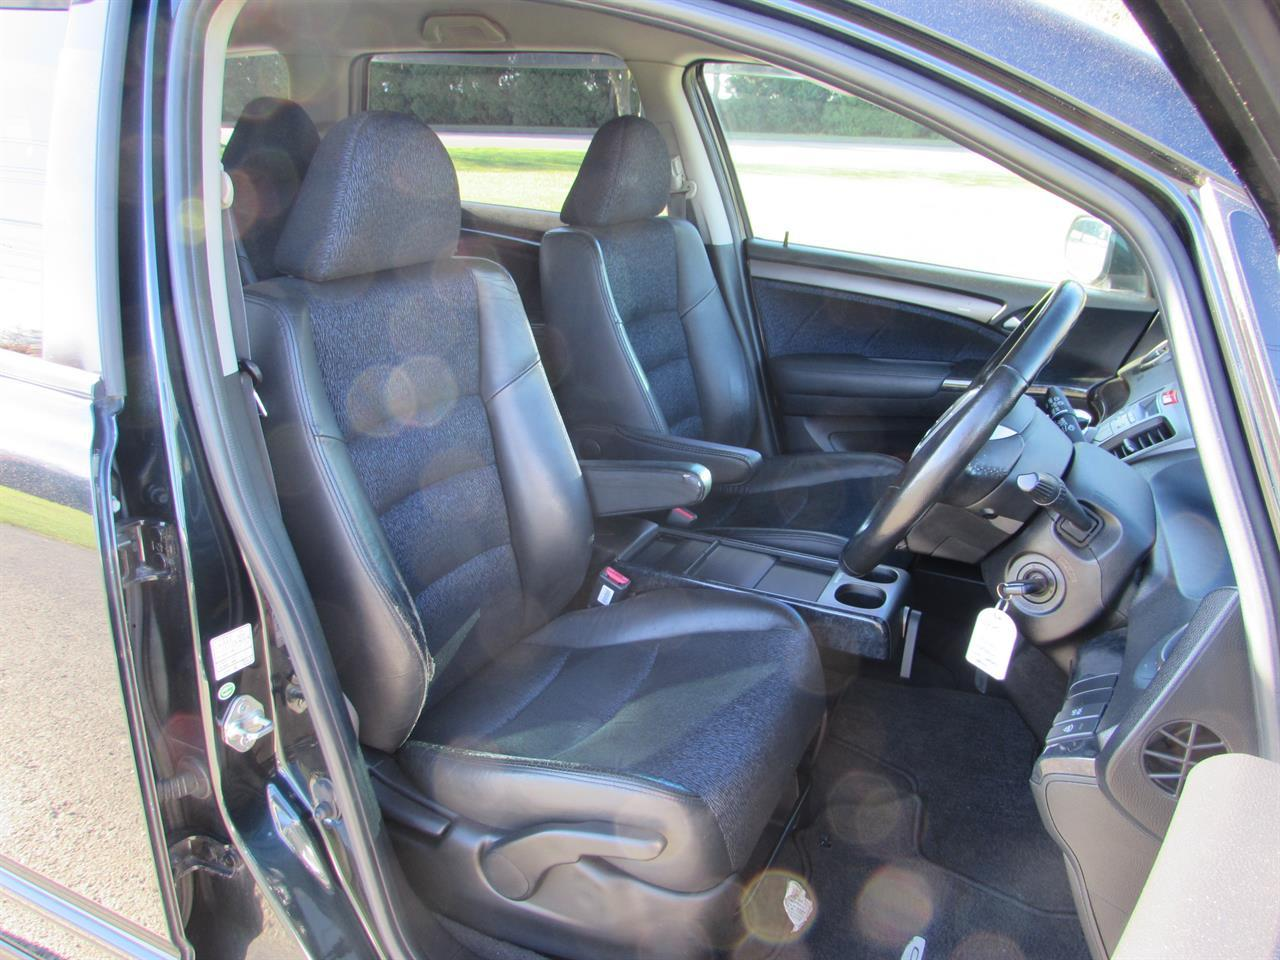 image-7, 2008 Honda Odyssey Absolute at Christchurch